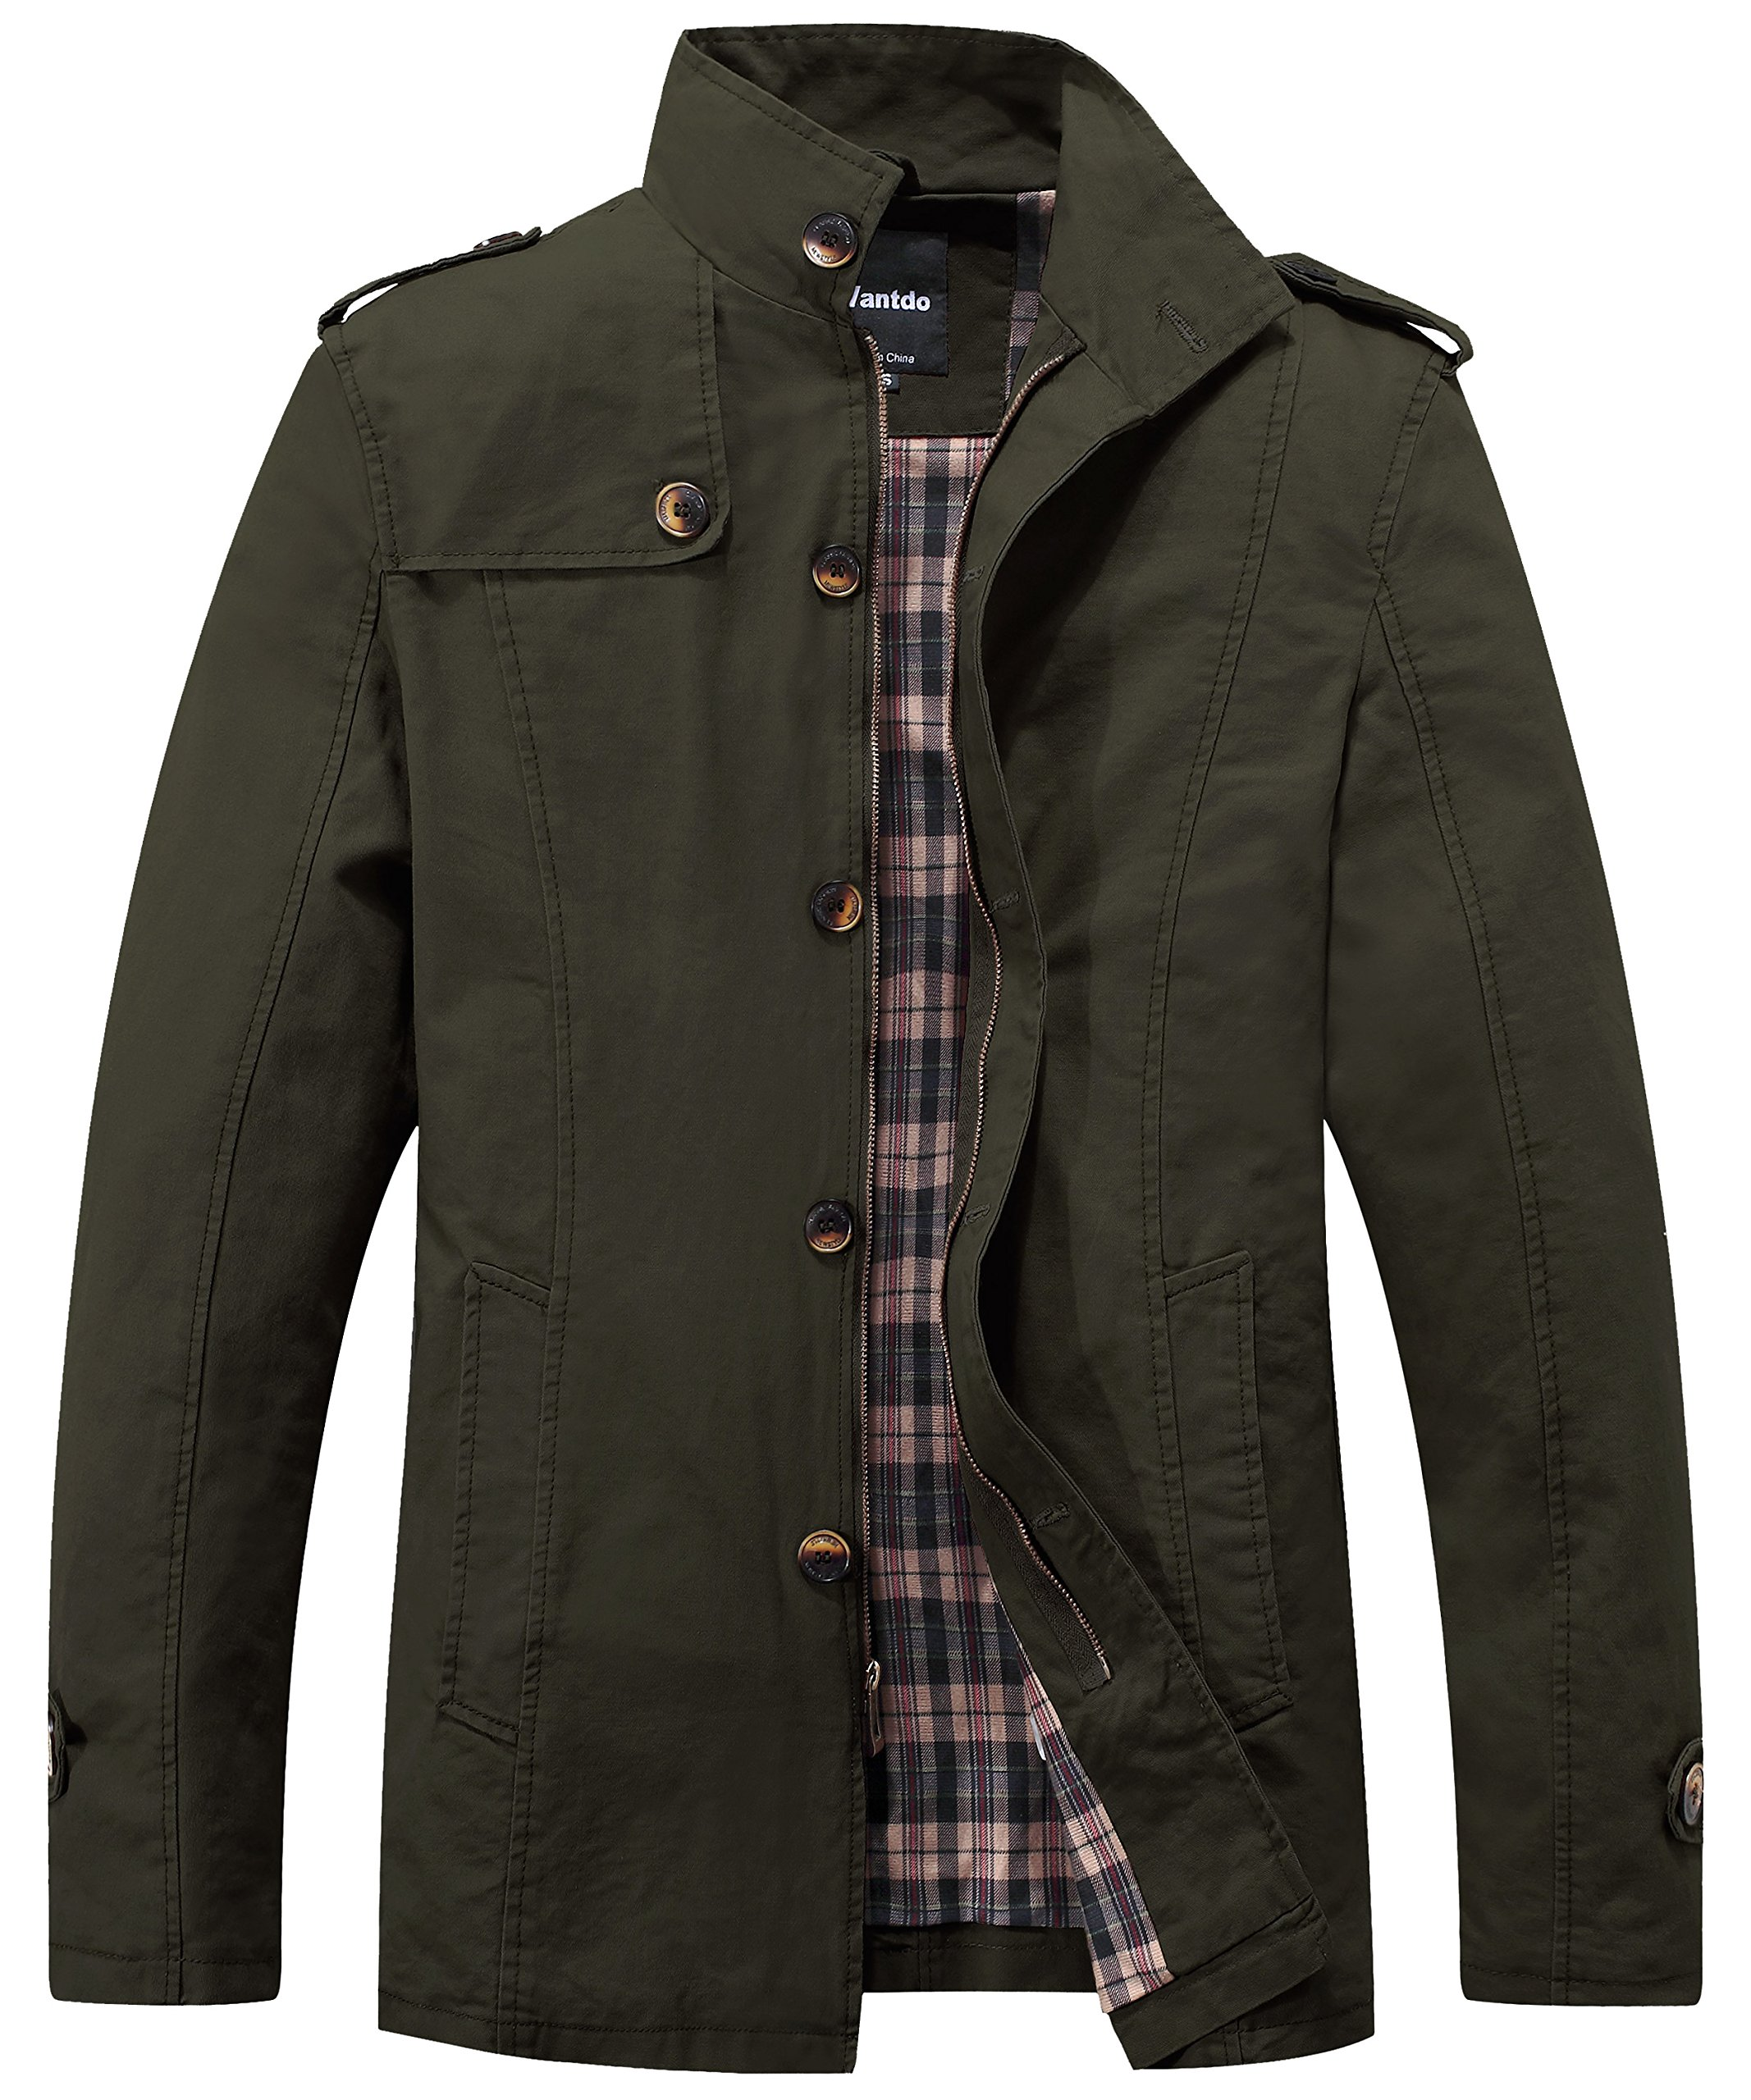 Wantdo Men's Stand Collar Cotton Classic Jacket US XX-Large Army Geen by Wantdo